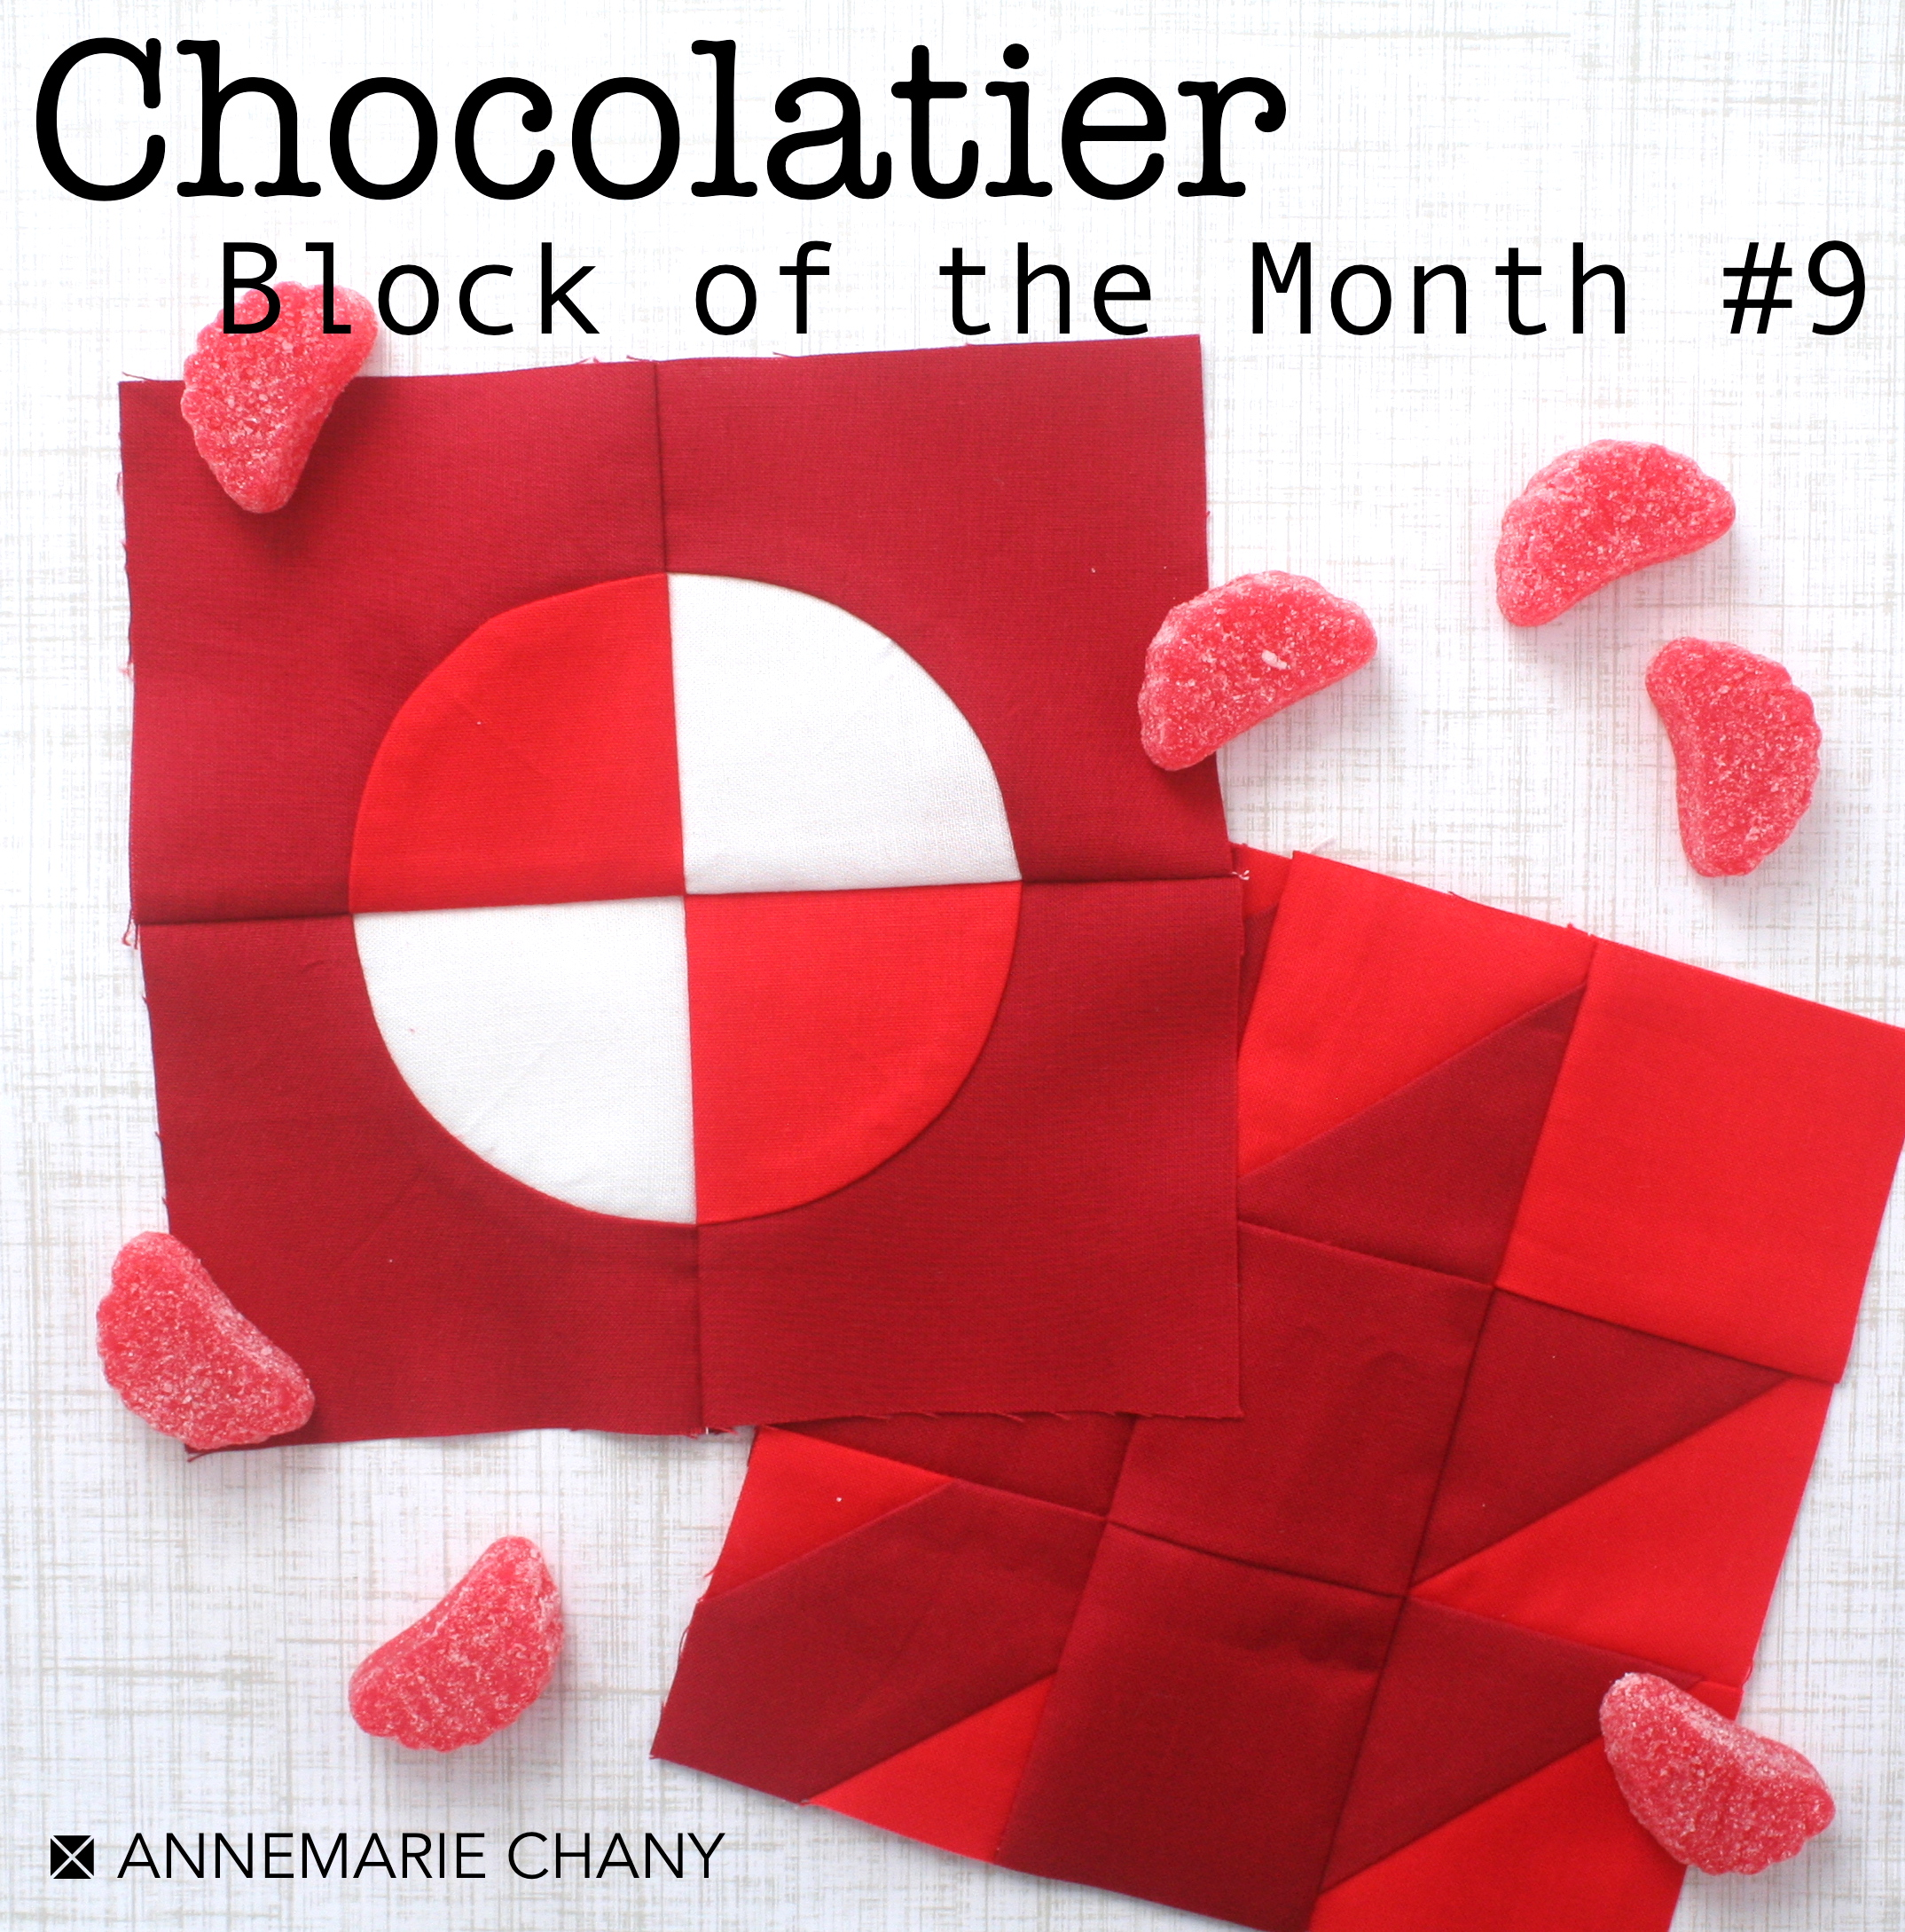 Chocolatier Block of the Month Quilt Blocks #9 by AnneMarie Chany